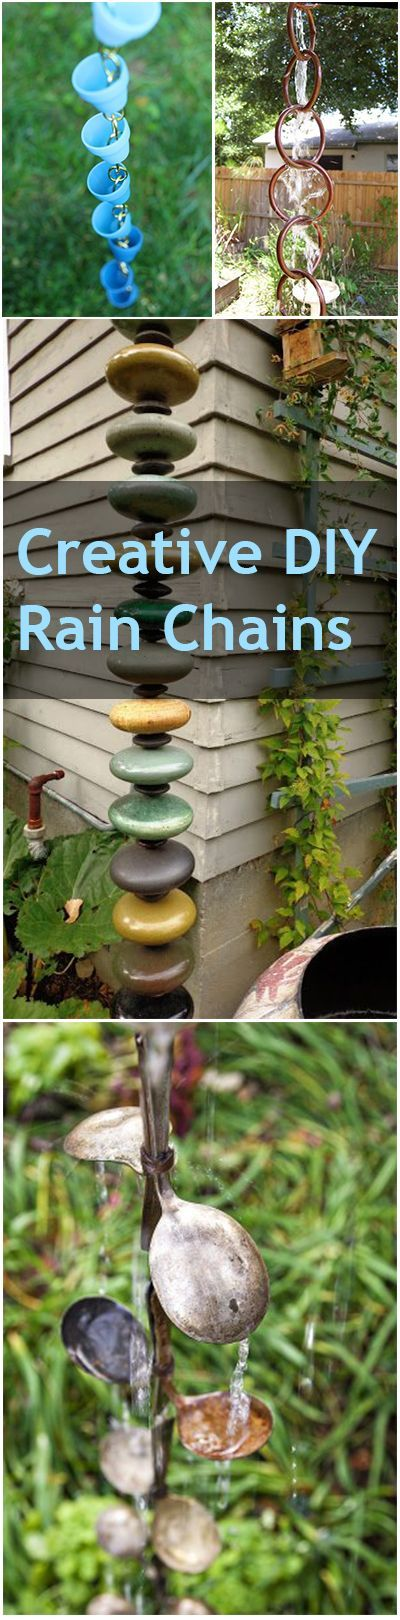 Rain chains are a beautiful and functional